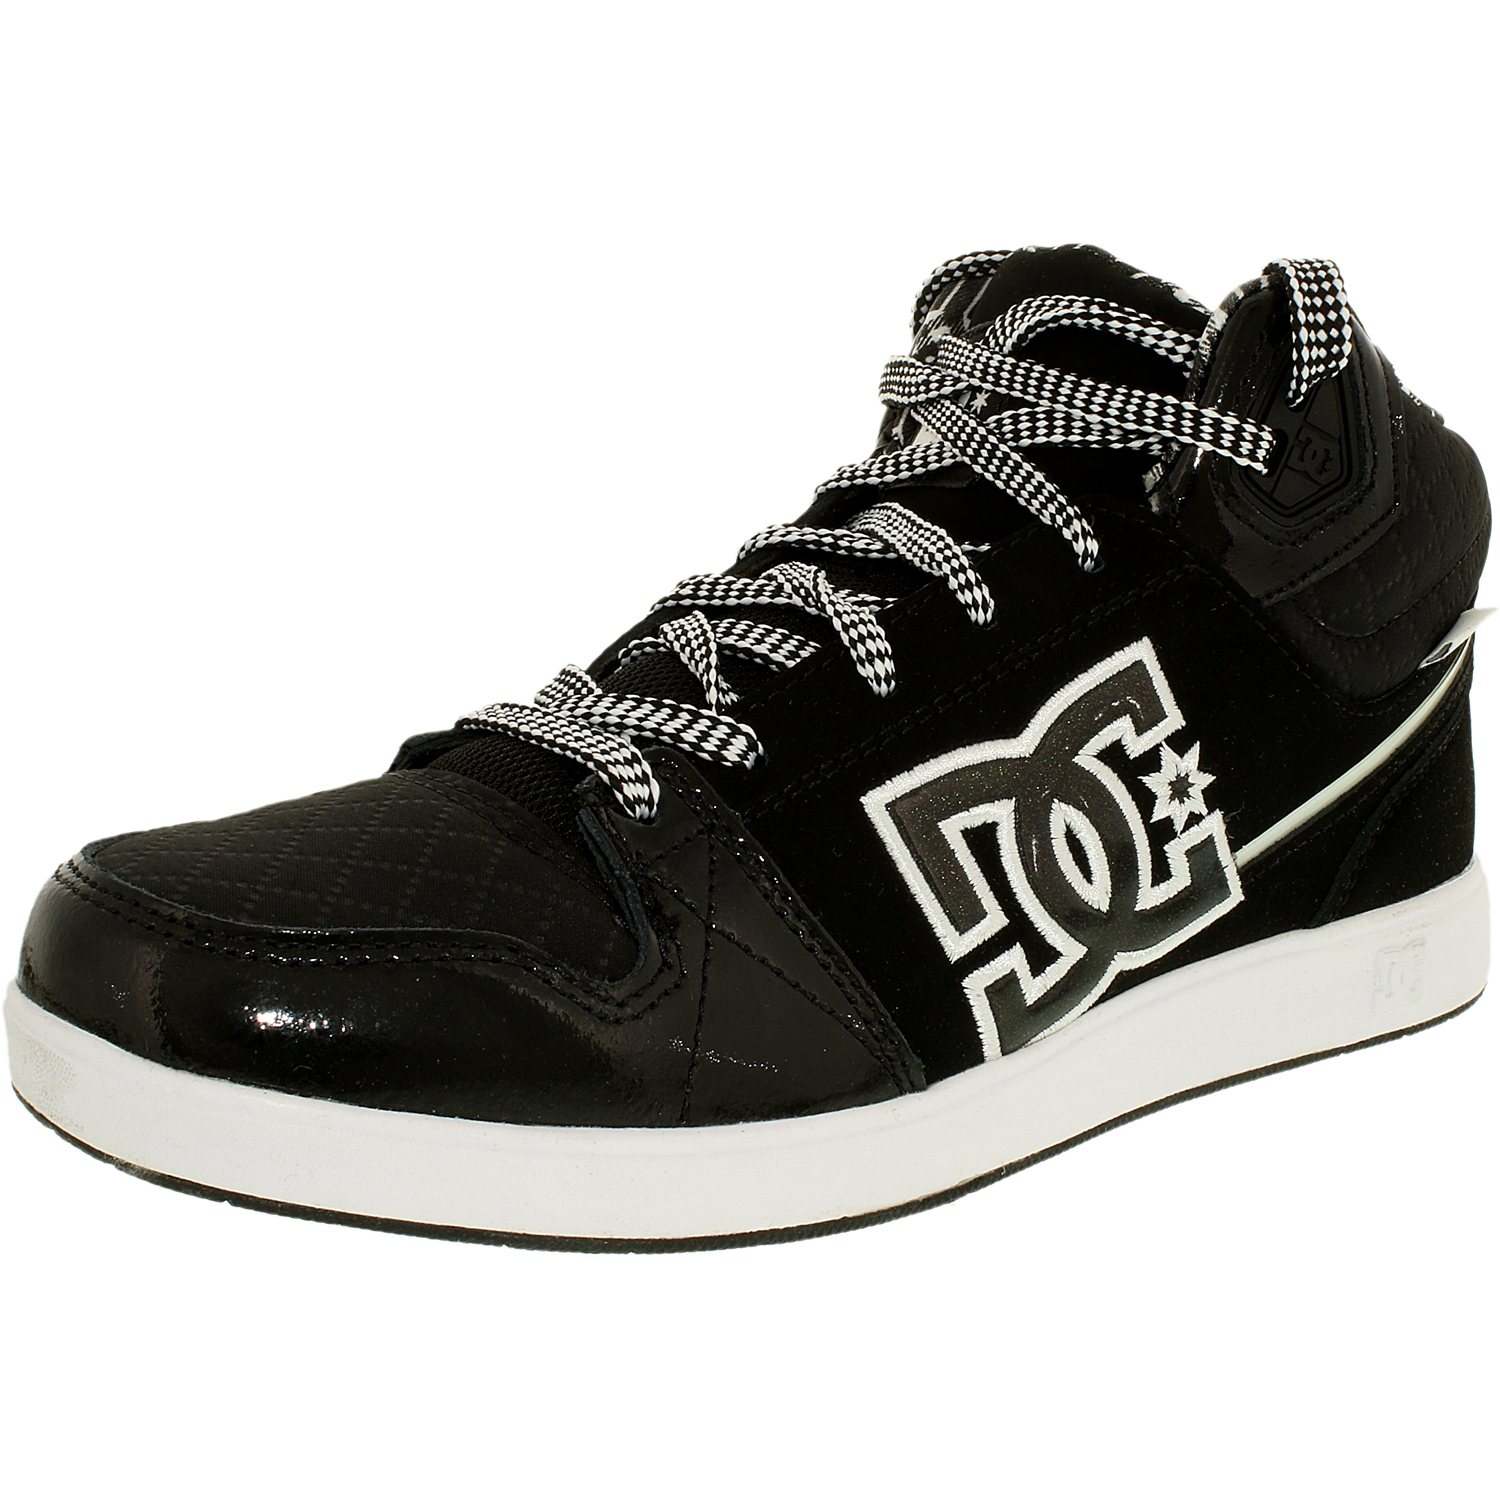 Dc Women's University Mid Black Ankle-High Suede Fashion Sneaker - 9M